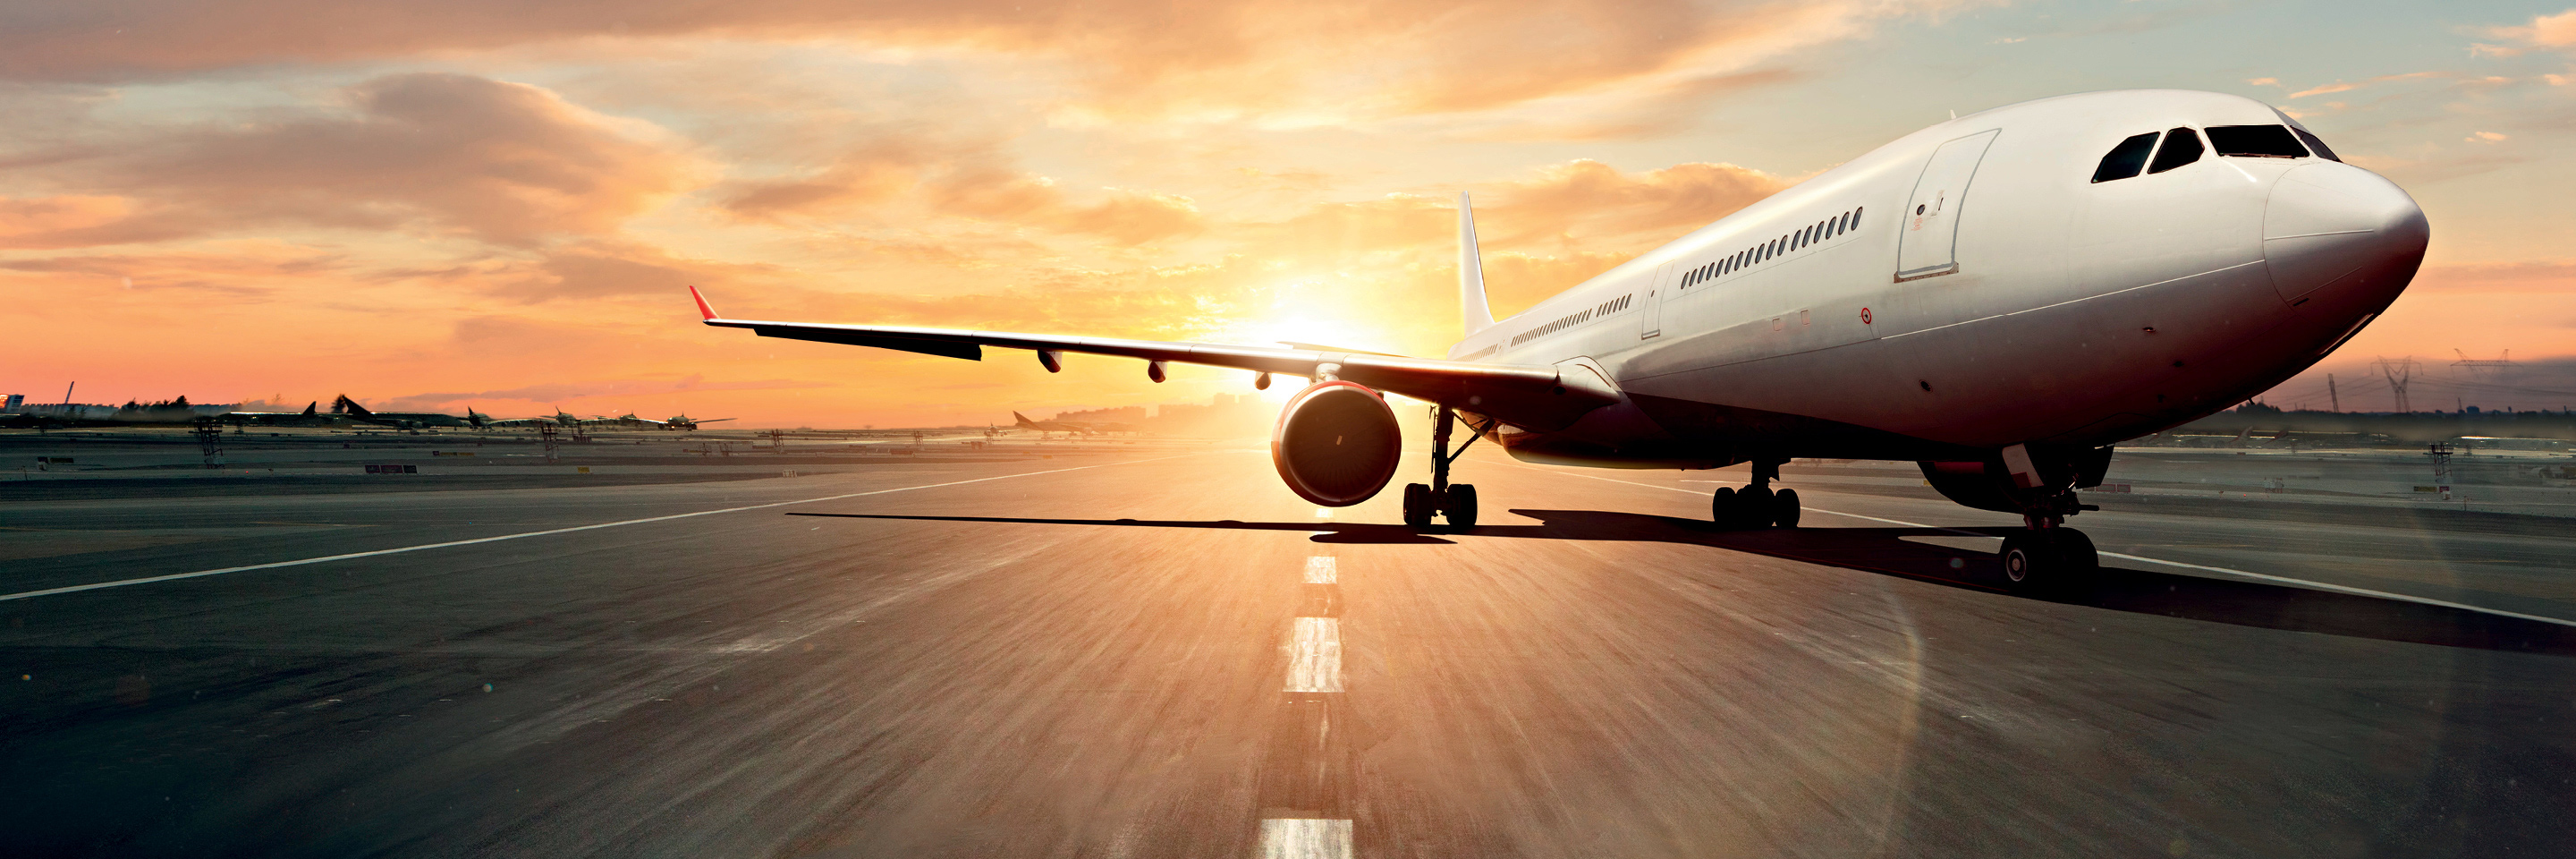 Prepare for Take Off with Globus